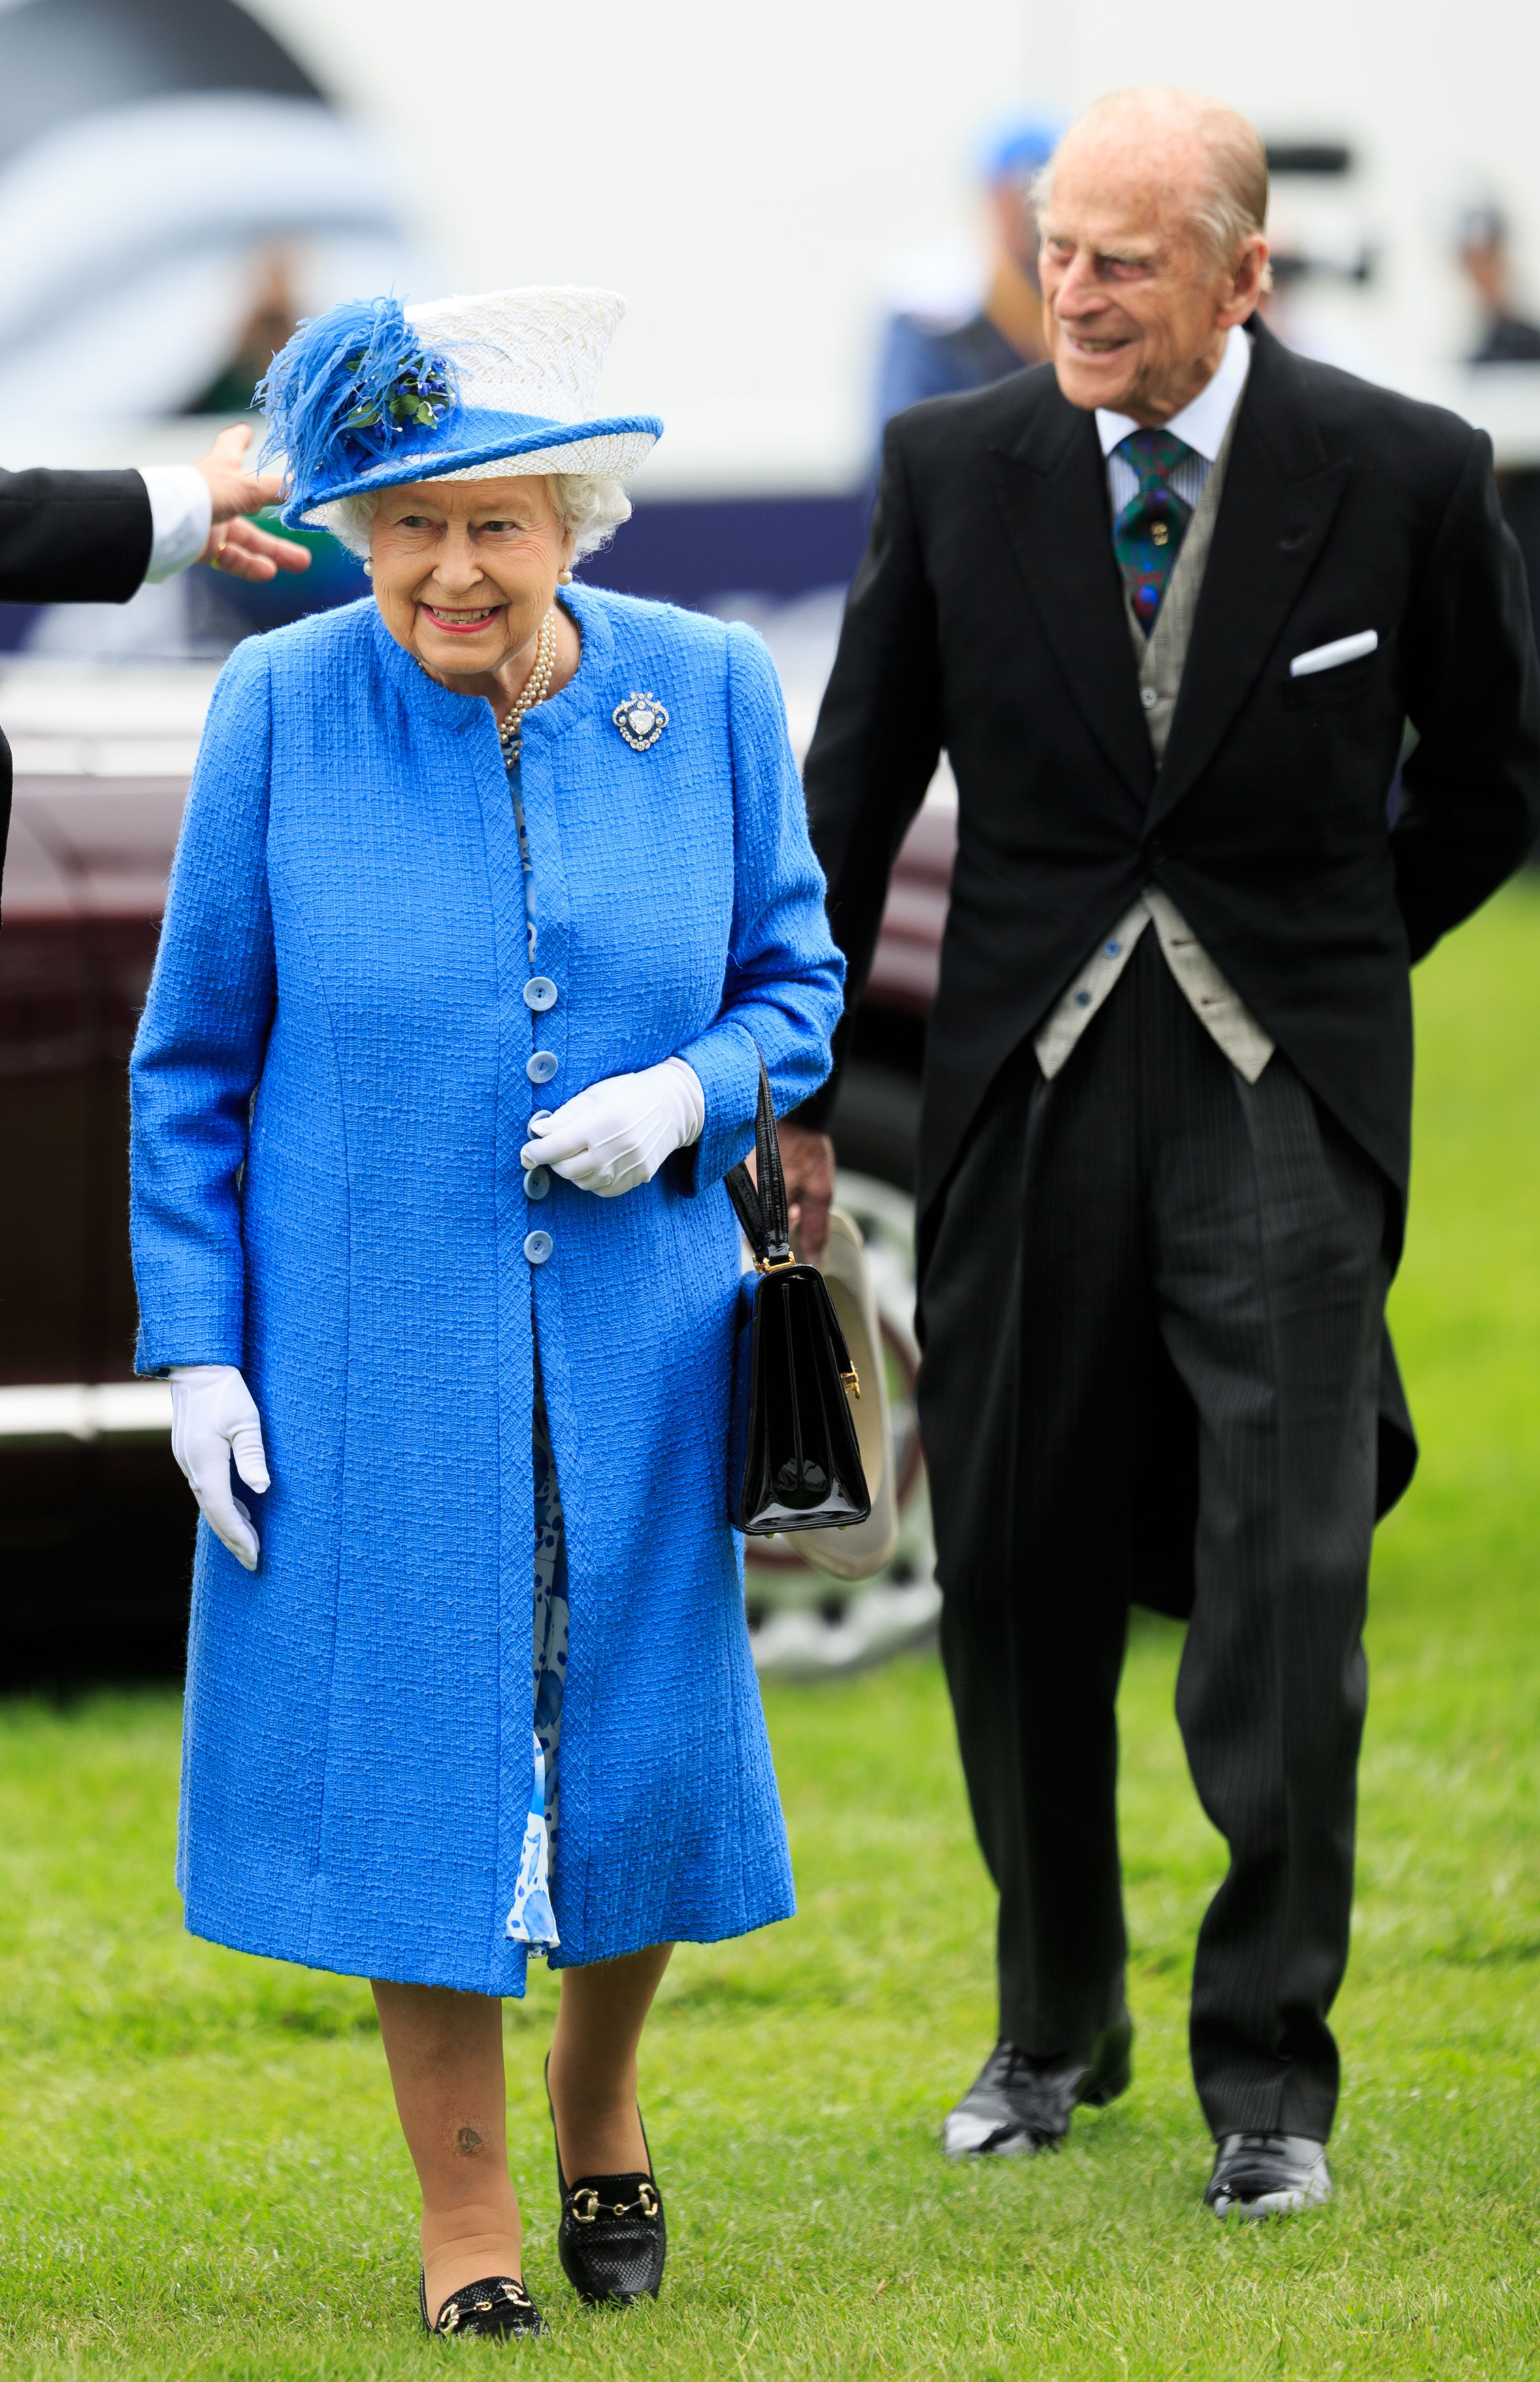 Queen Elizabeth II arrives with her husband the Duke of Edinburgh for Derby Day of the 2016 Epsom Derby Festival at Epsom Racecourse, southern England, Saturday June 4, 2016. (John Walton/ PA via AP) UNITED KINGDOM OUT - NO SALES - NO ARCHIVES